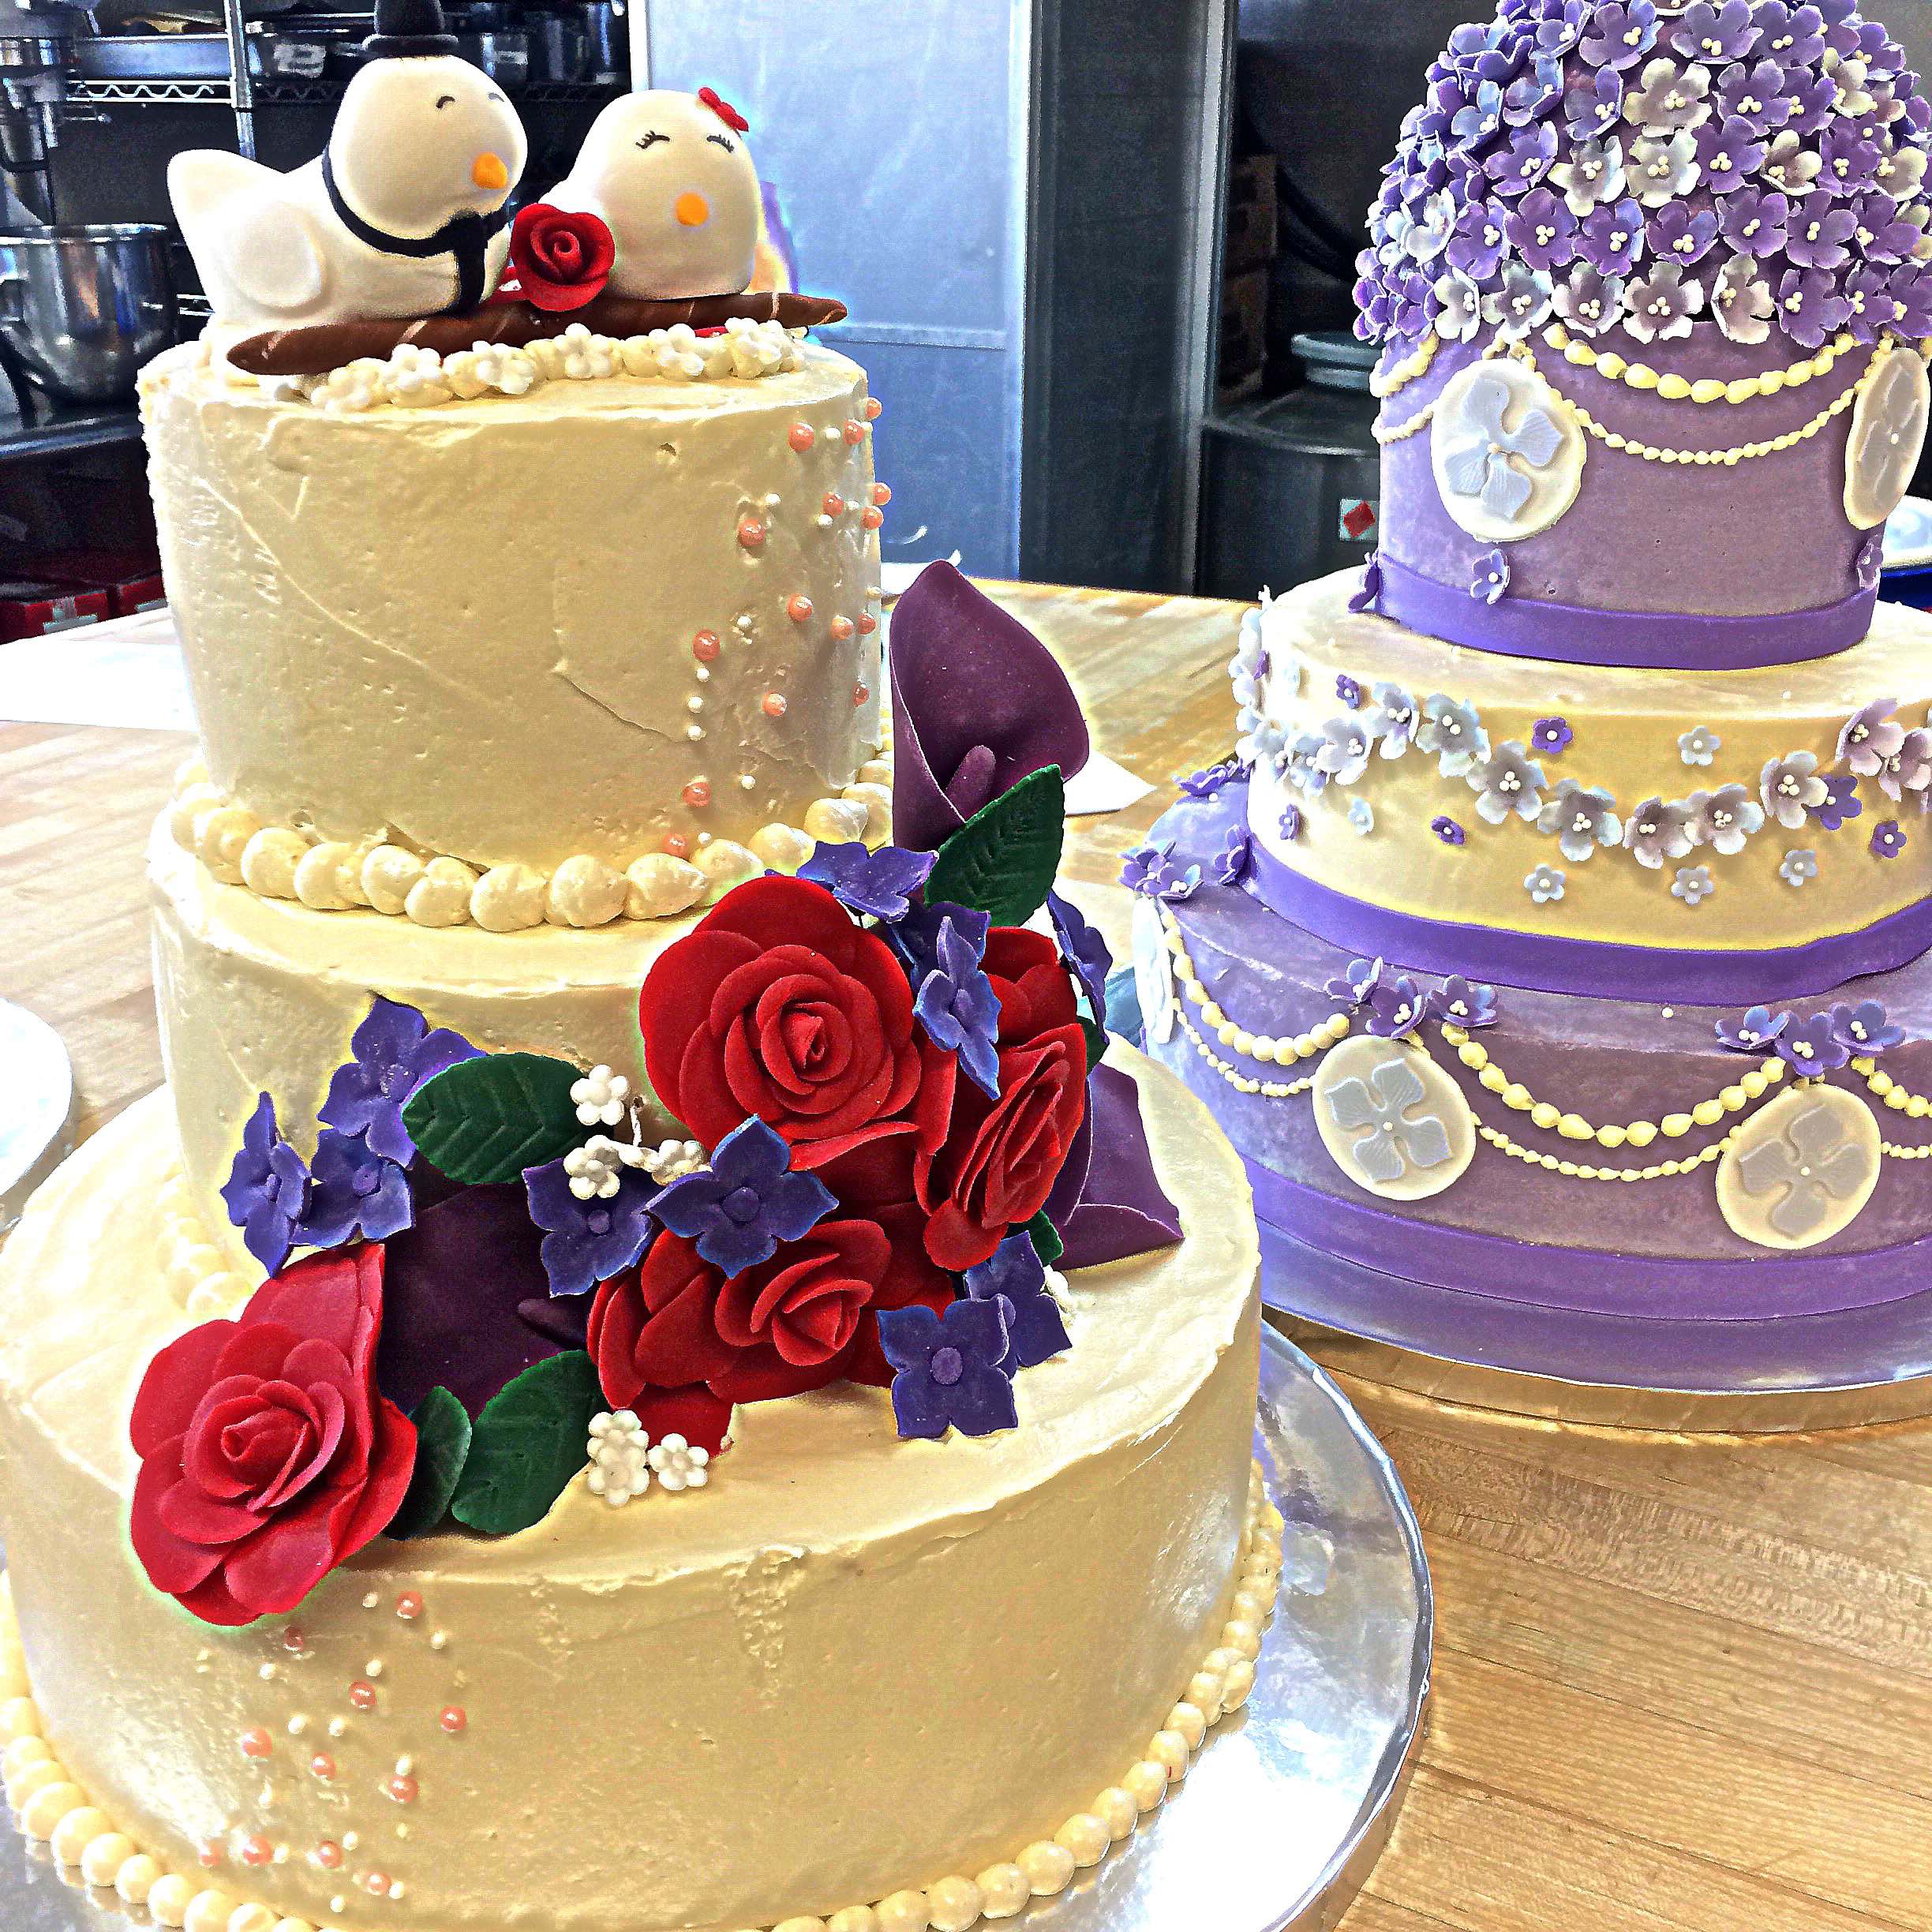 Decorated Cakes from Promise Culinary School